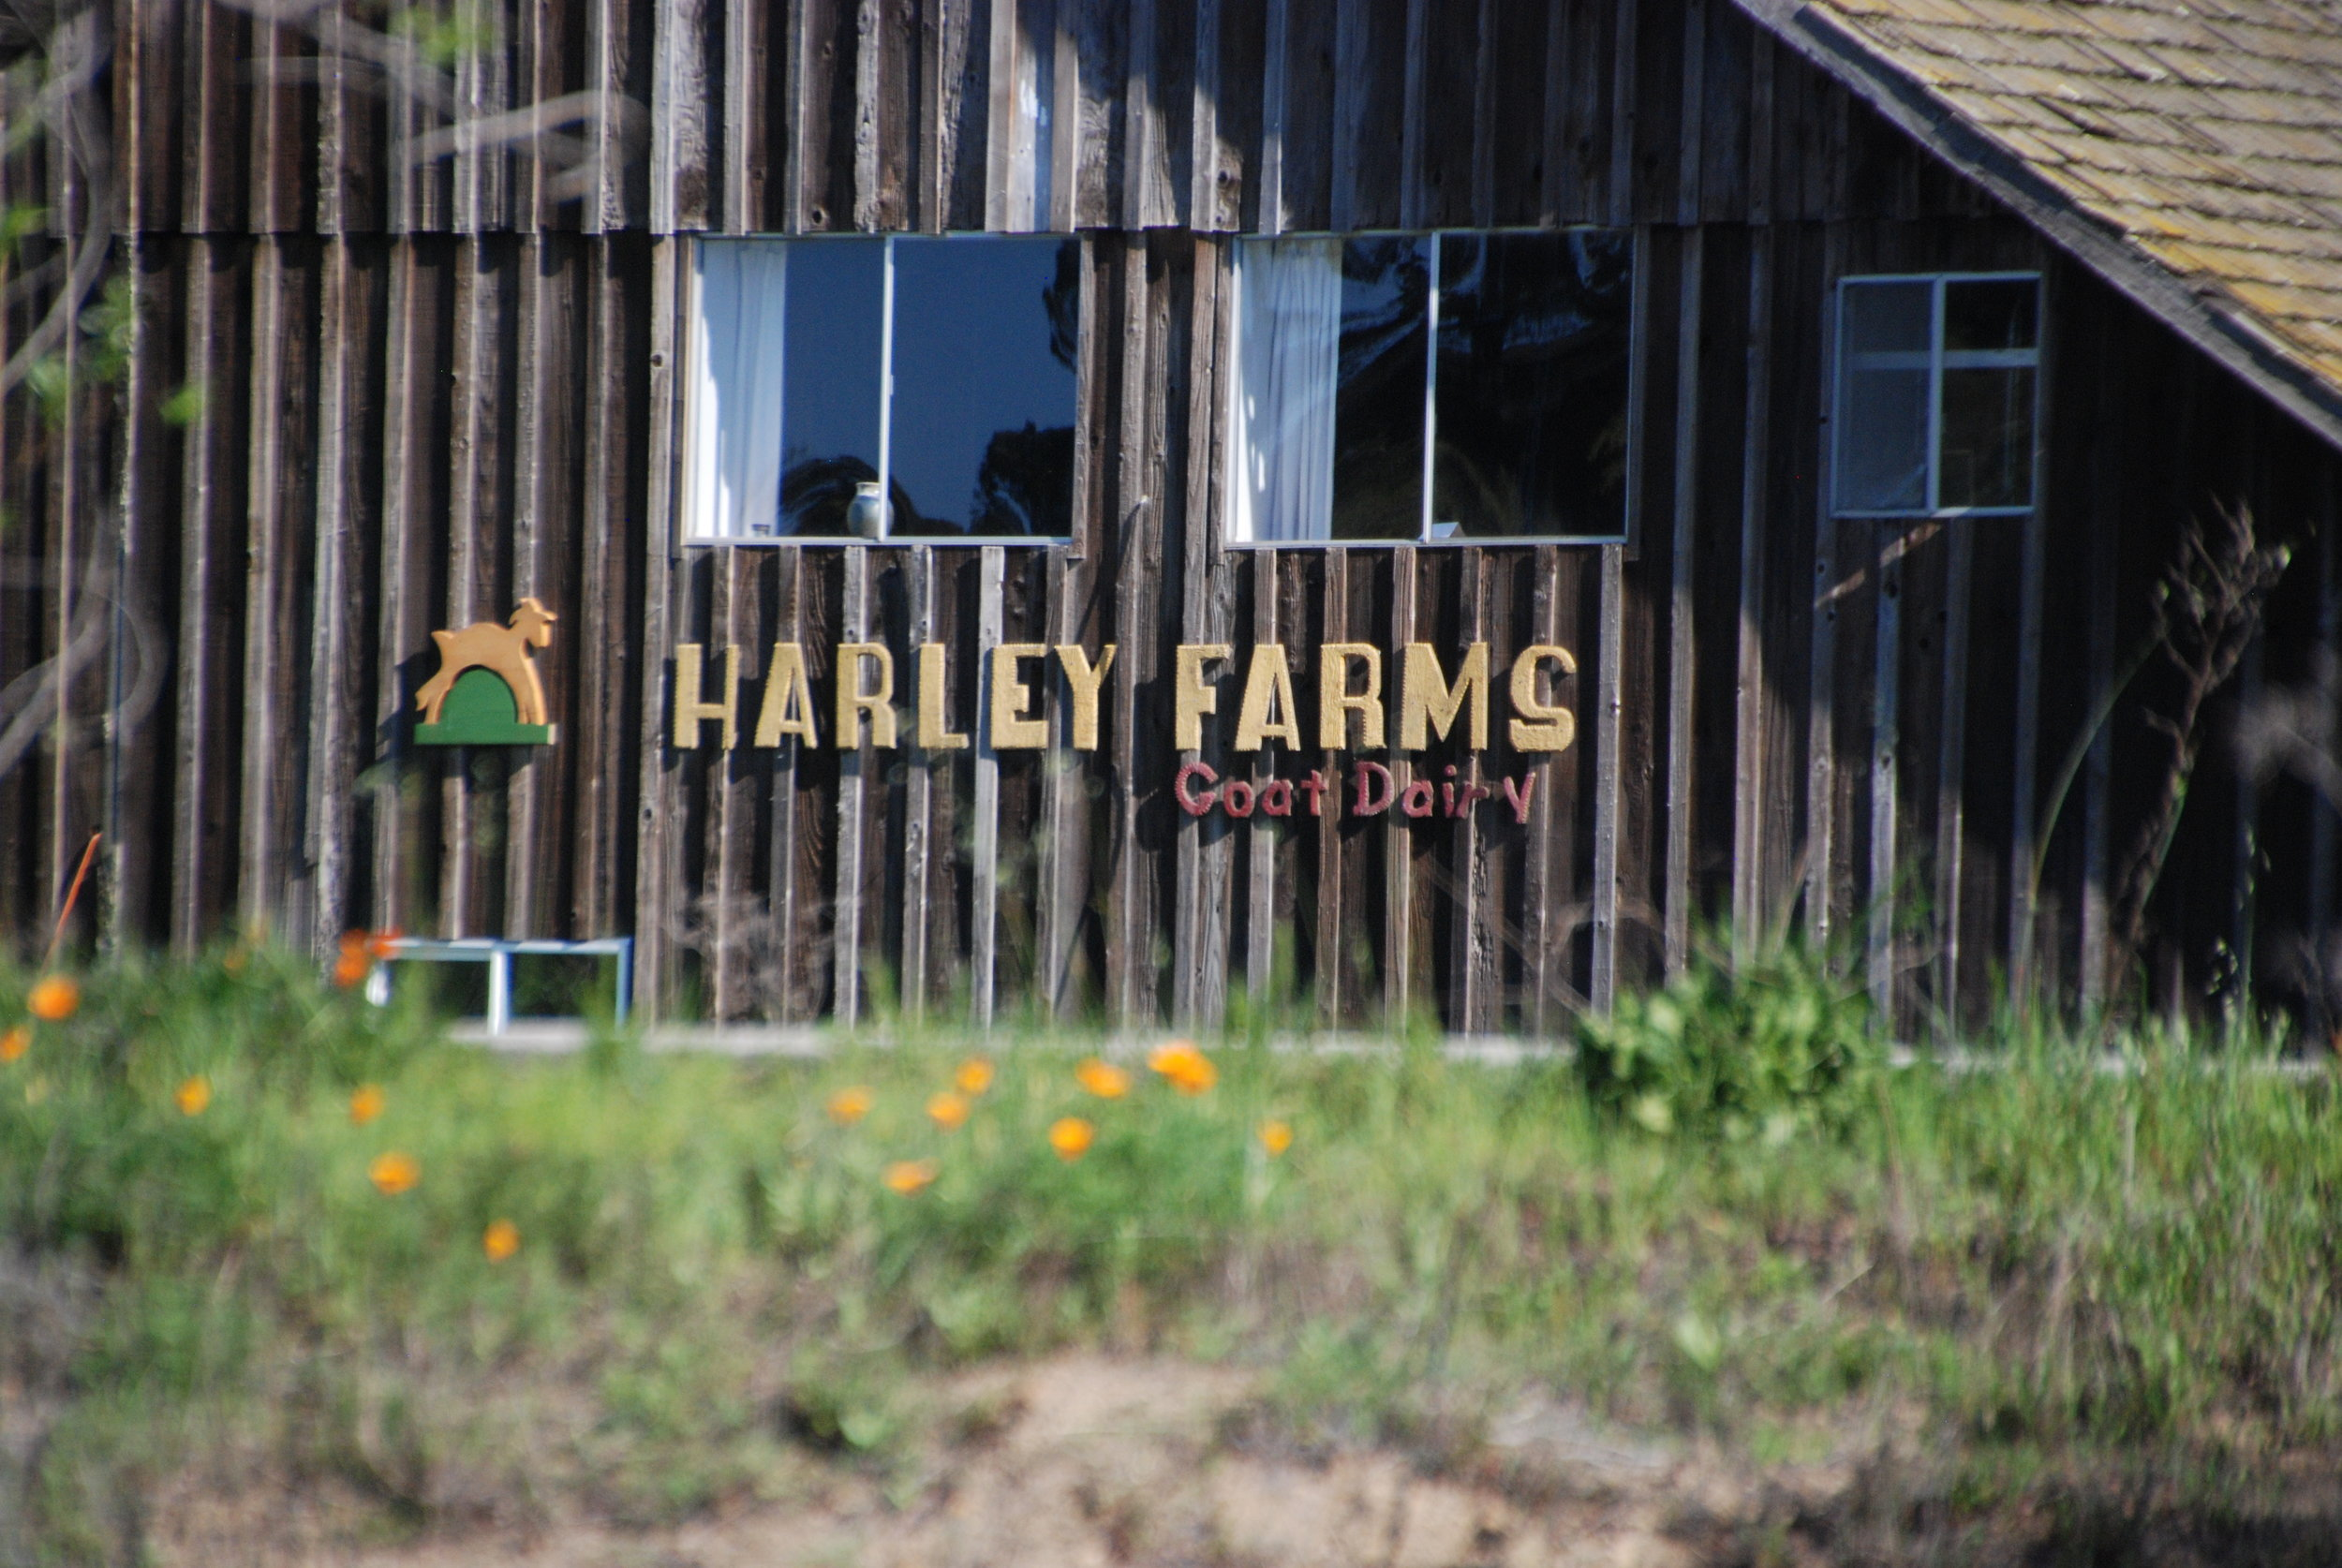 Harley Farms is a Goat Dairy that sells goat cheese as well as soaps and lotions made with goat milk. It is small (80 goats) and has a devoted owner and workers.